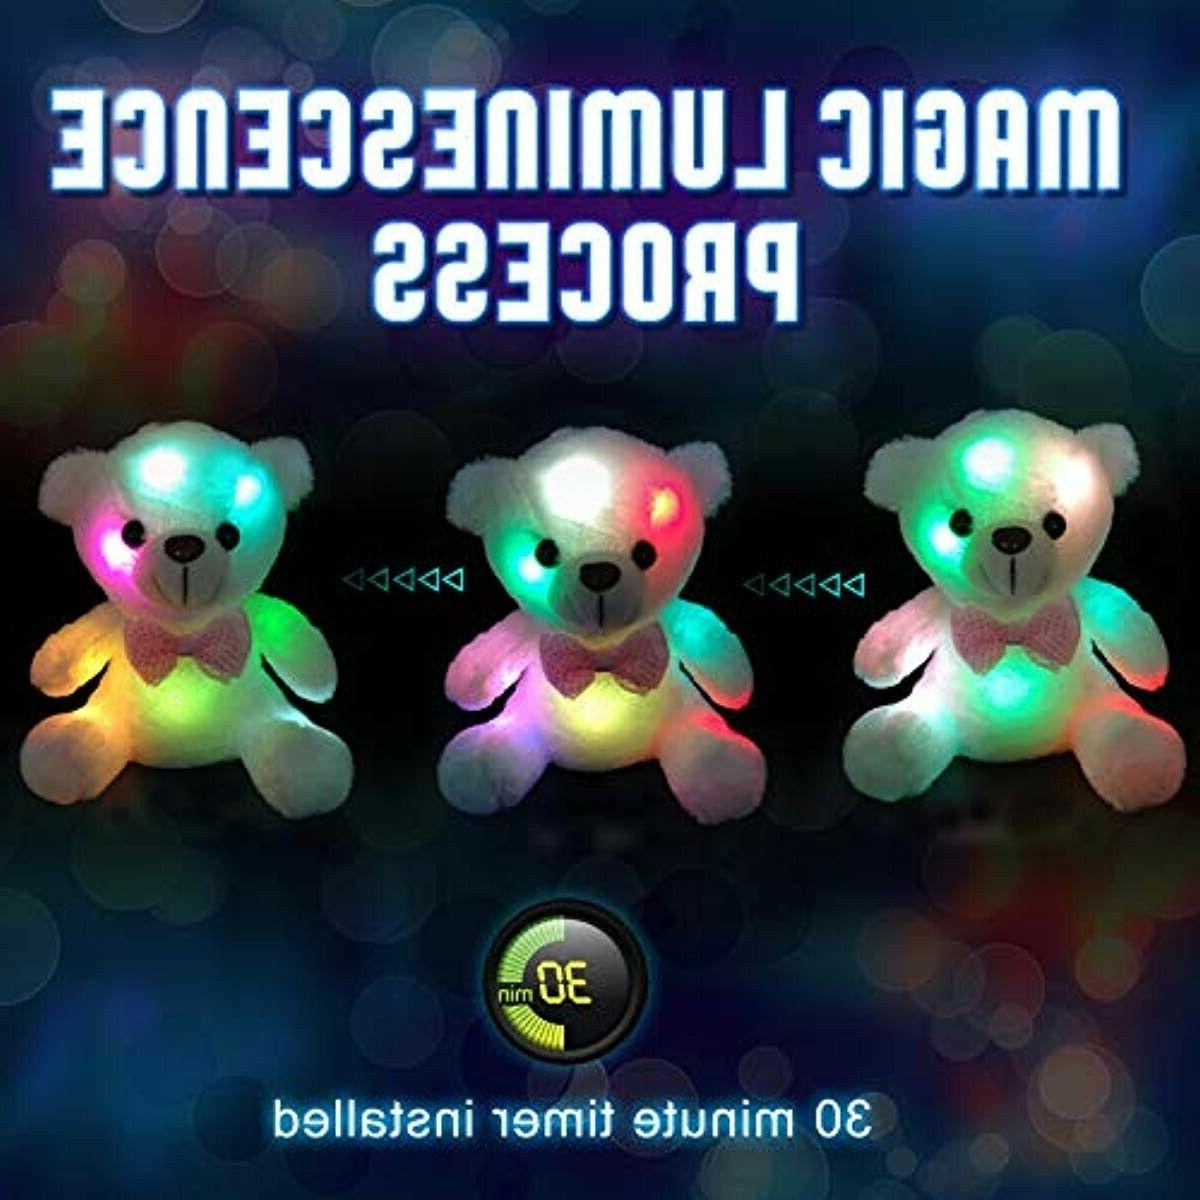 with Luminous Colorful Night Stuffed Animals